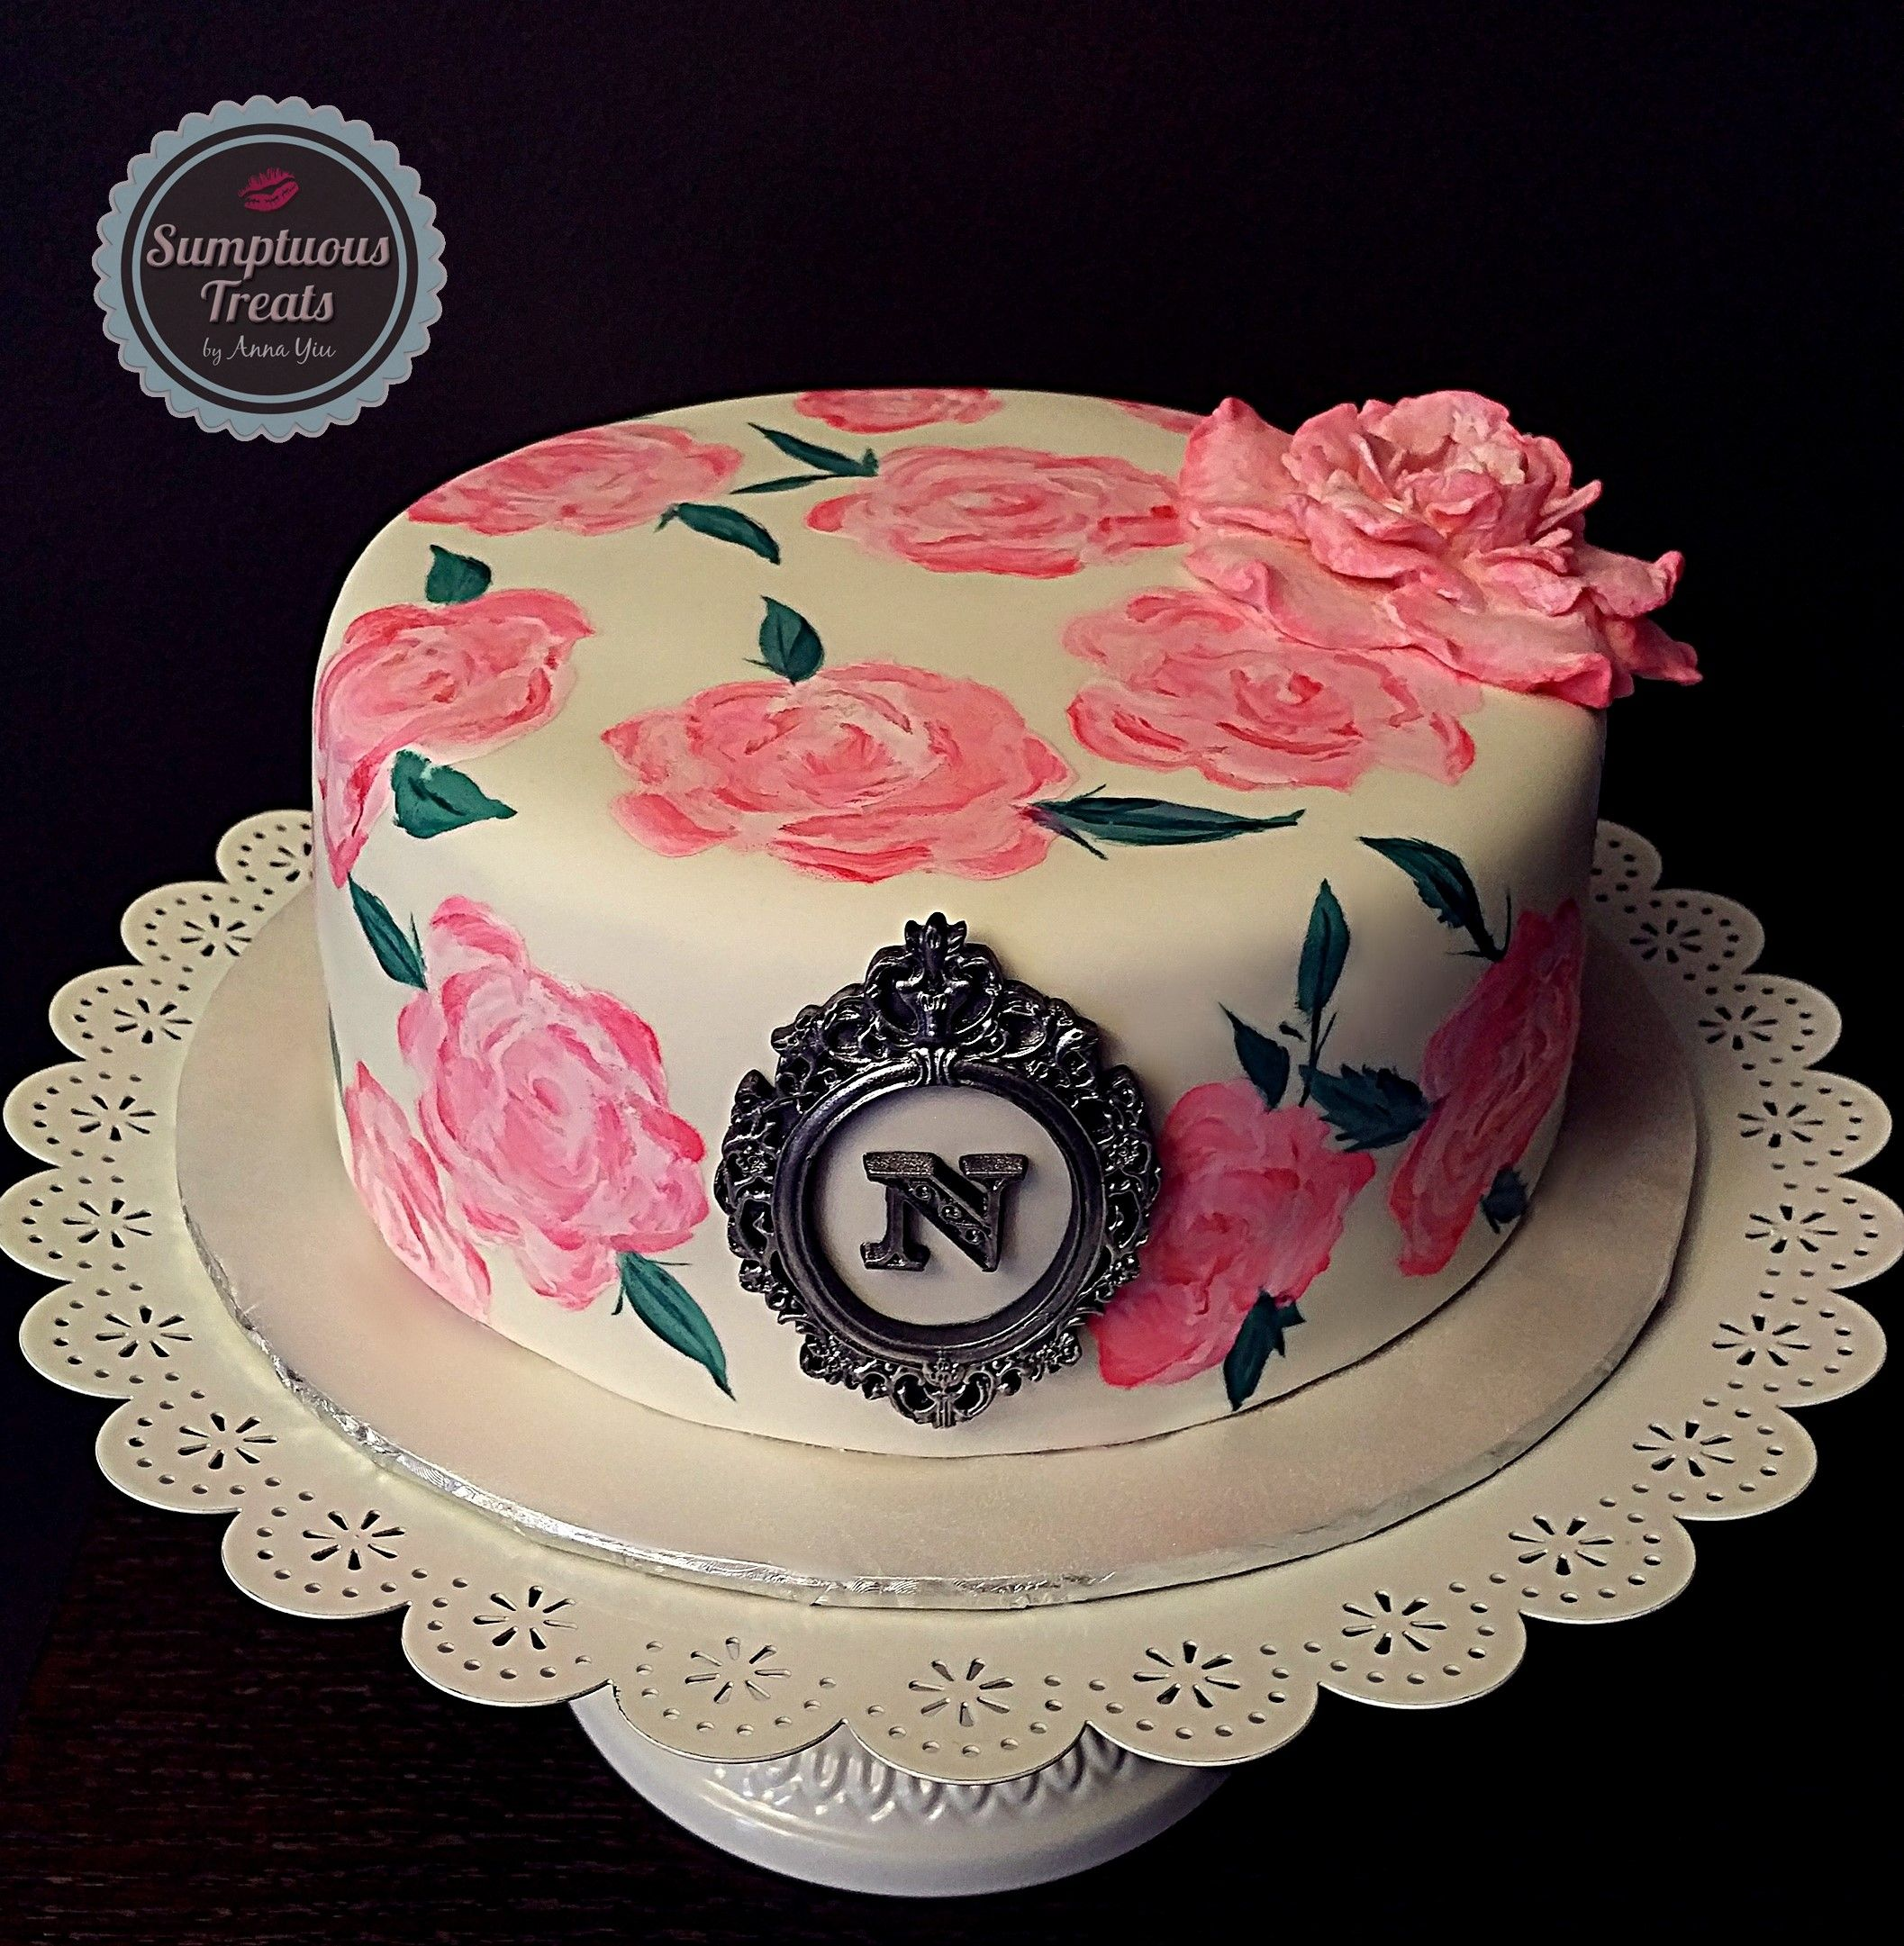 Hand Painted Pink Rose Cake CustomMadeToOrder Cakes Cupcakes